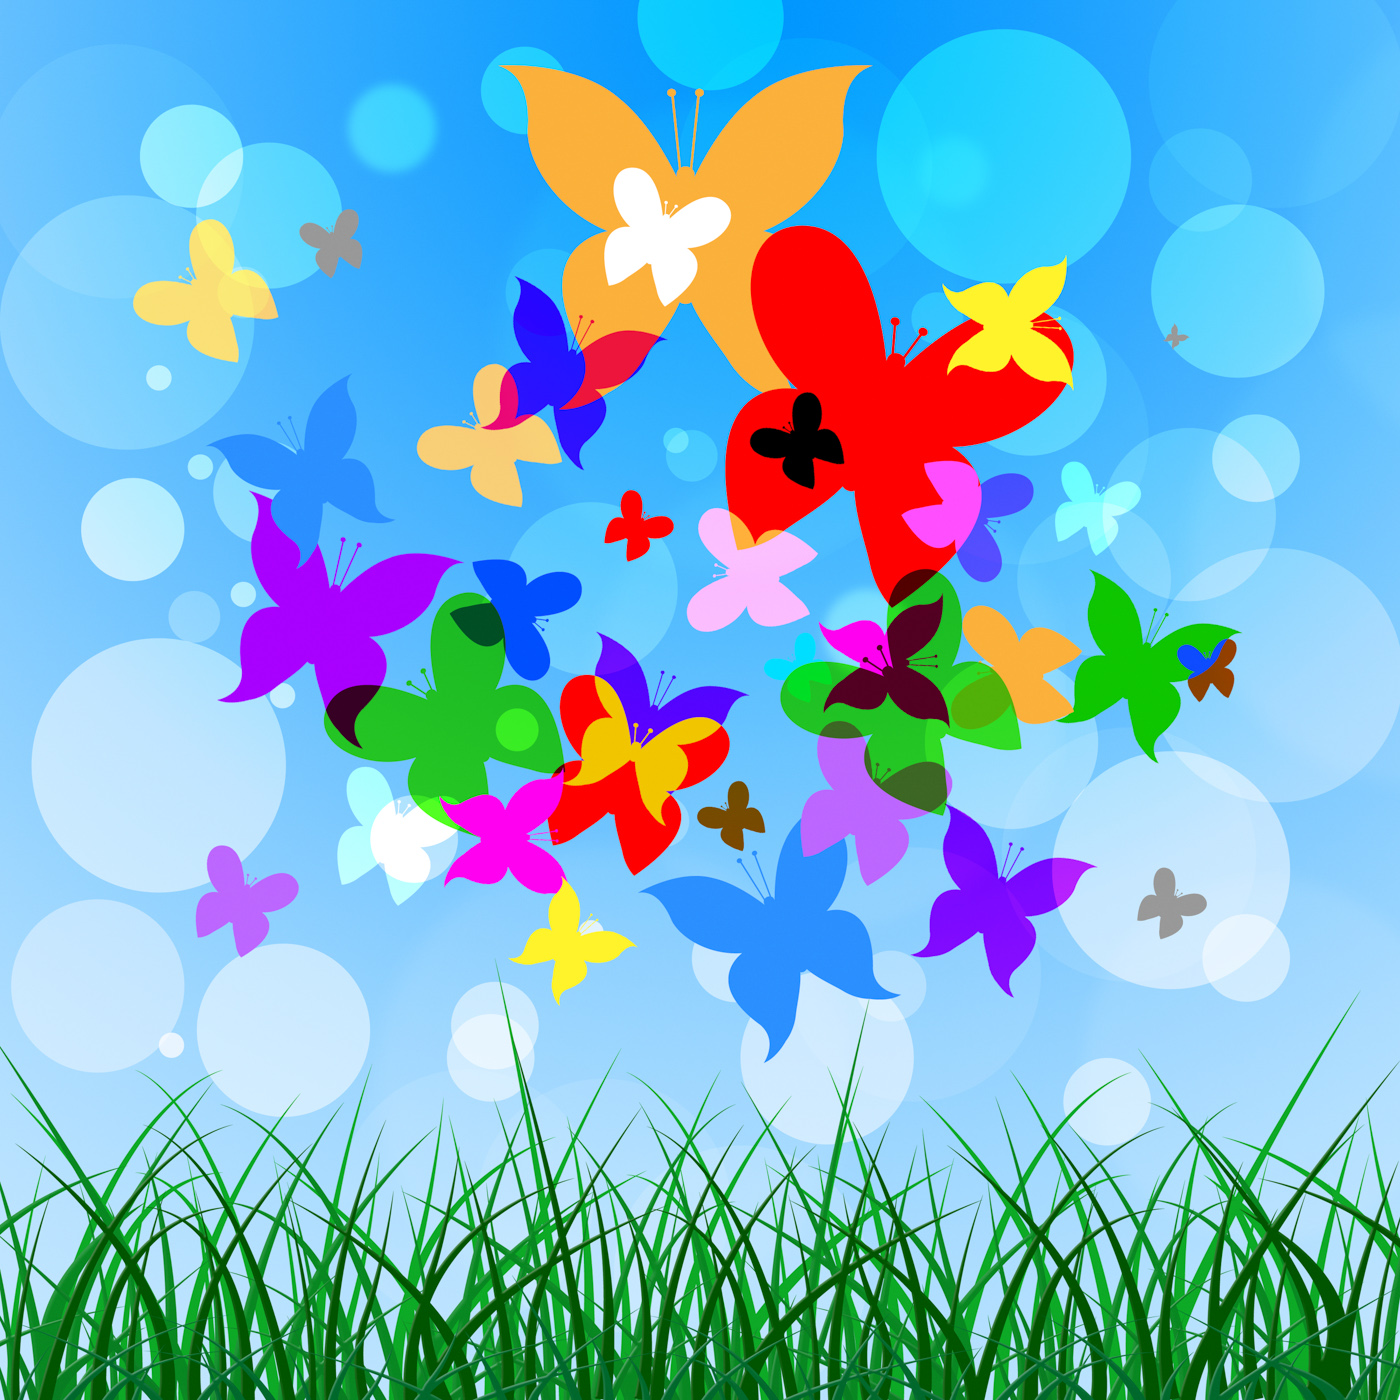 Background Butterflies Represents Summer Time And Creature, Heat, Warm, Template, Summertime, HQ Photo